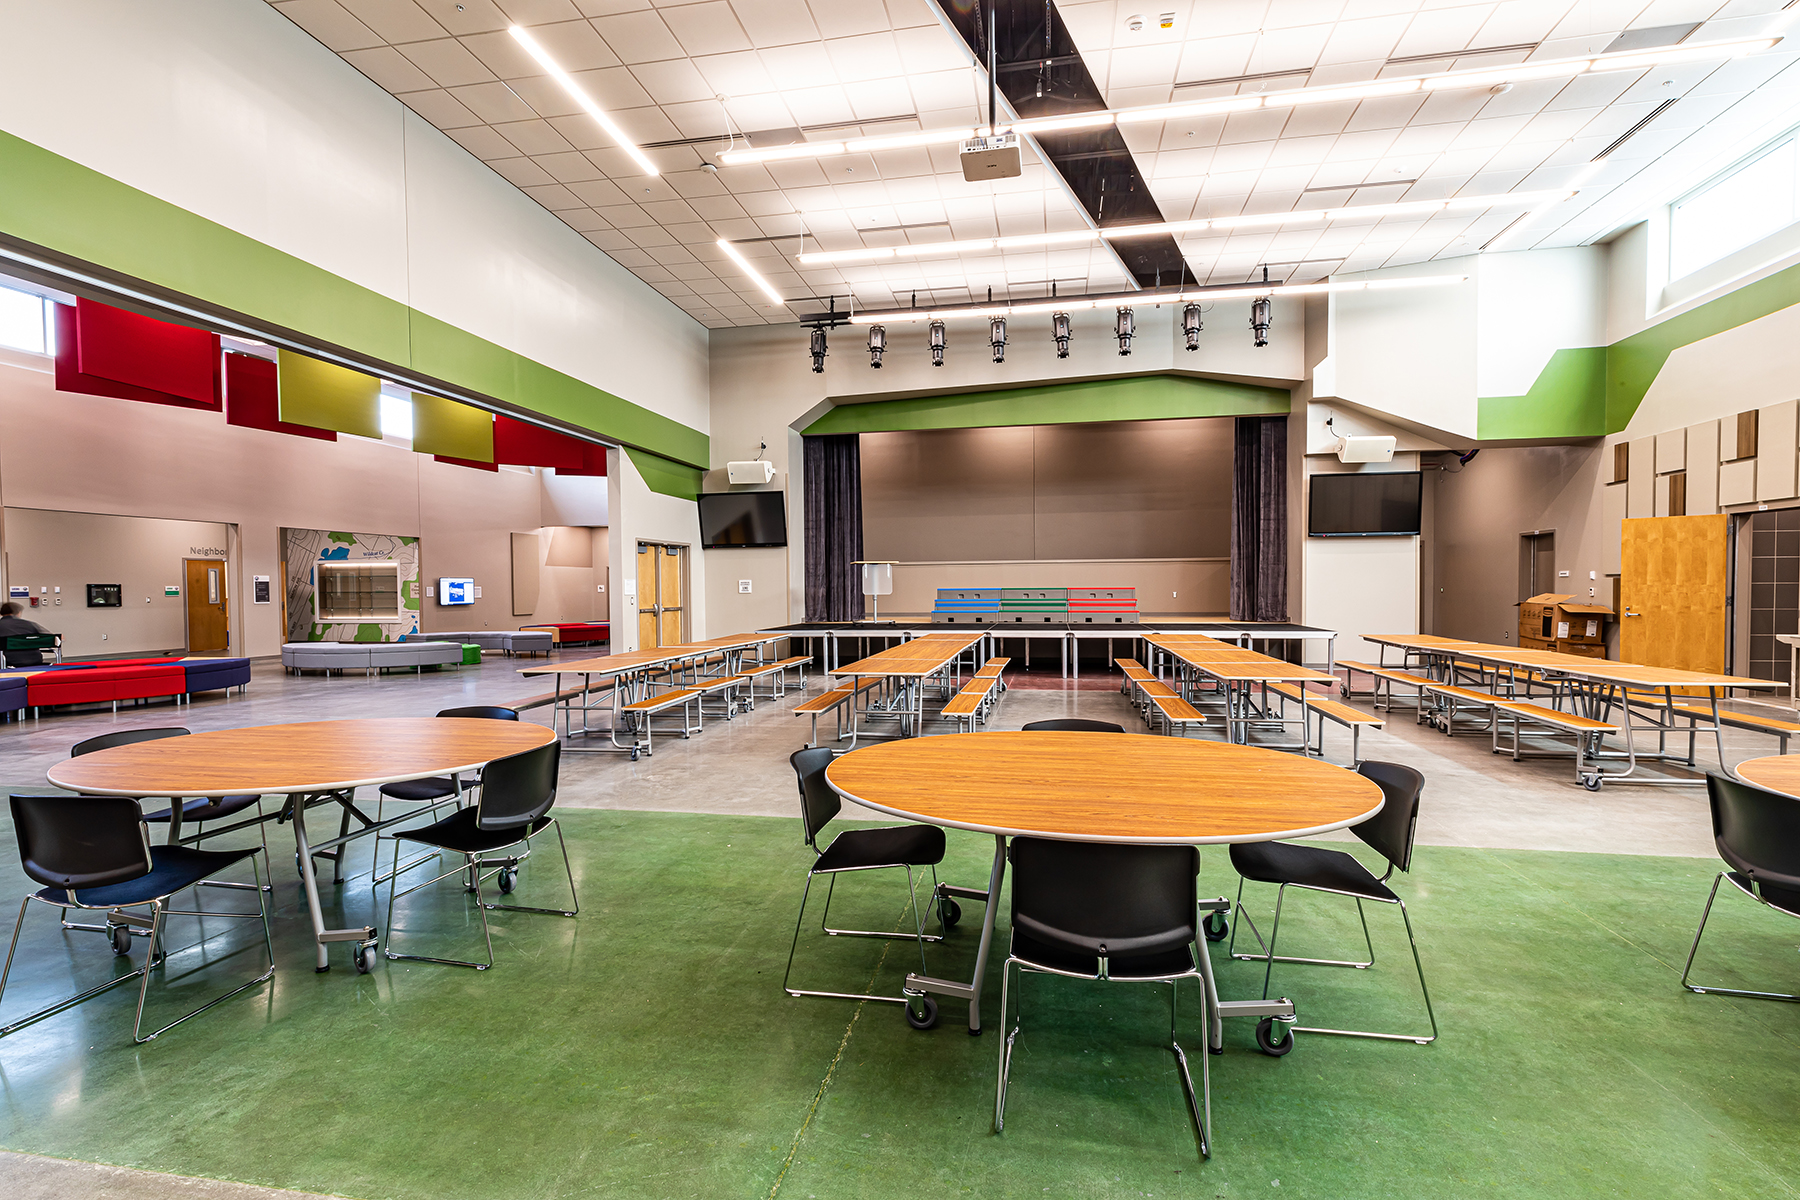 elementary school commons area